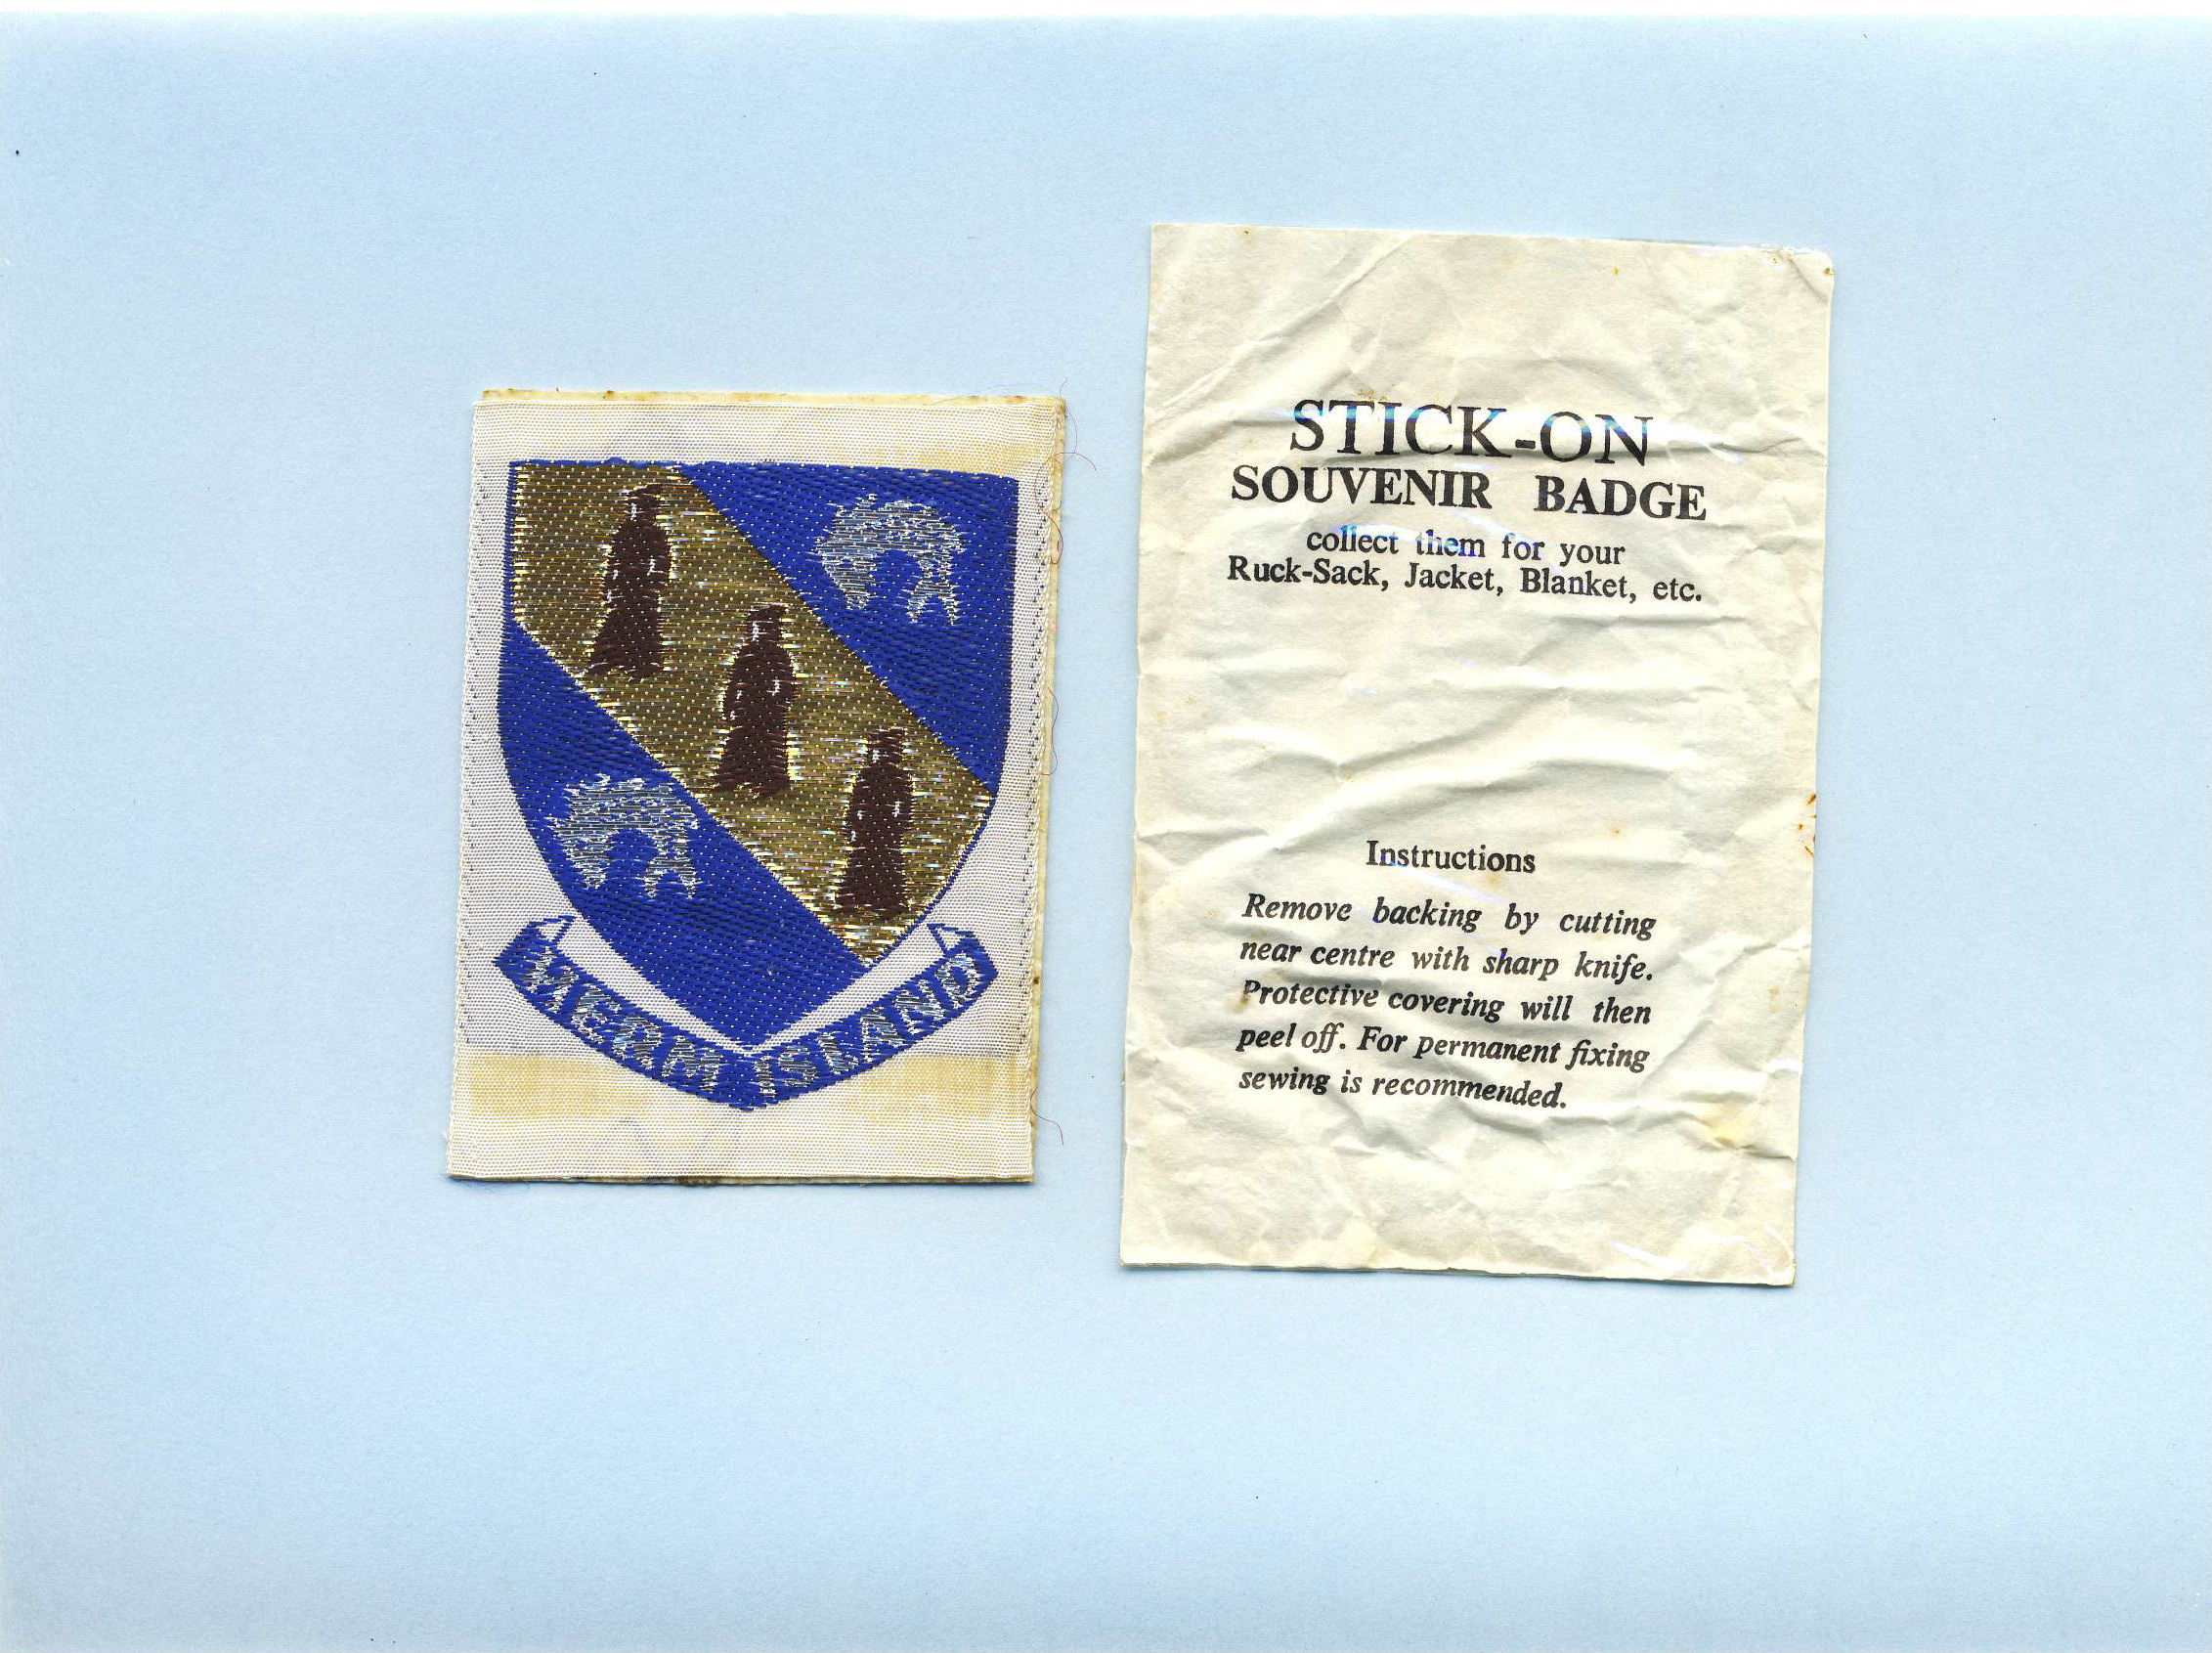 HERM ISLAND Stick-on vintage souvenir Badge refS5  a pre-owned vintage item in good condition. Measures 5.5cm x 6.5 approx. Herm is one of the Channel Islands. Part of the Parish of St Peter Port in the Bailiwick of Guernsey